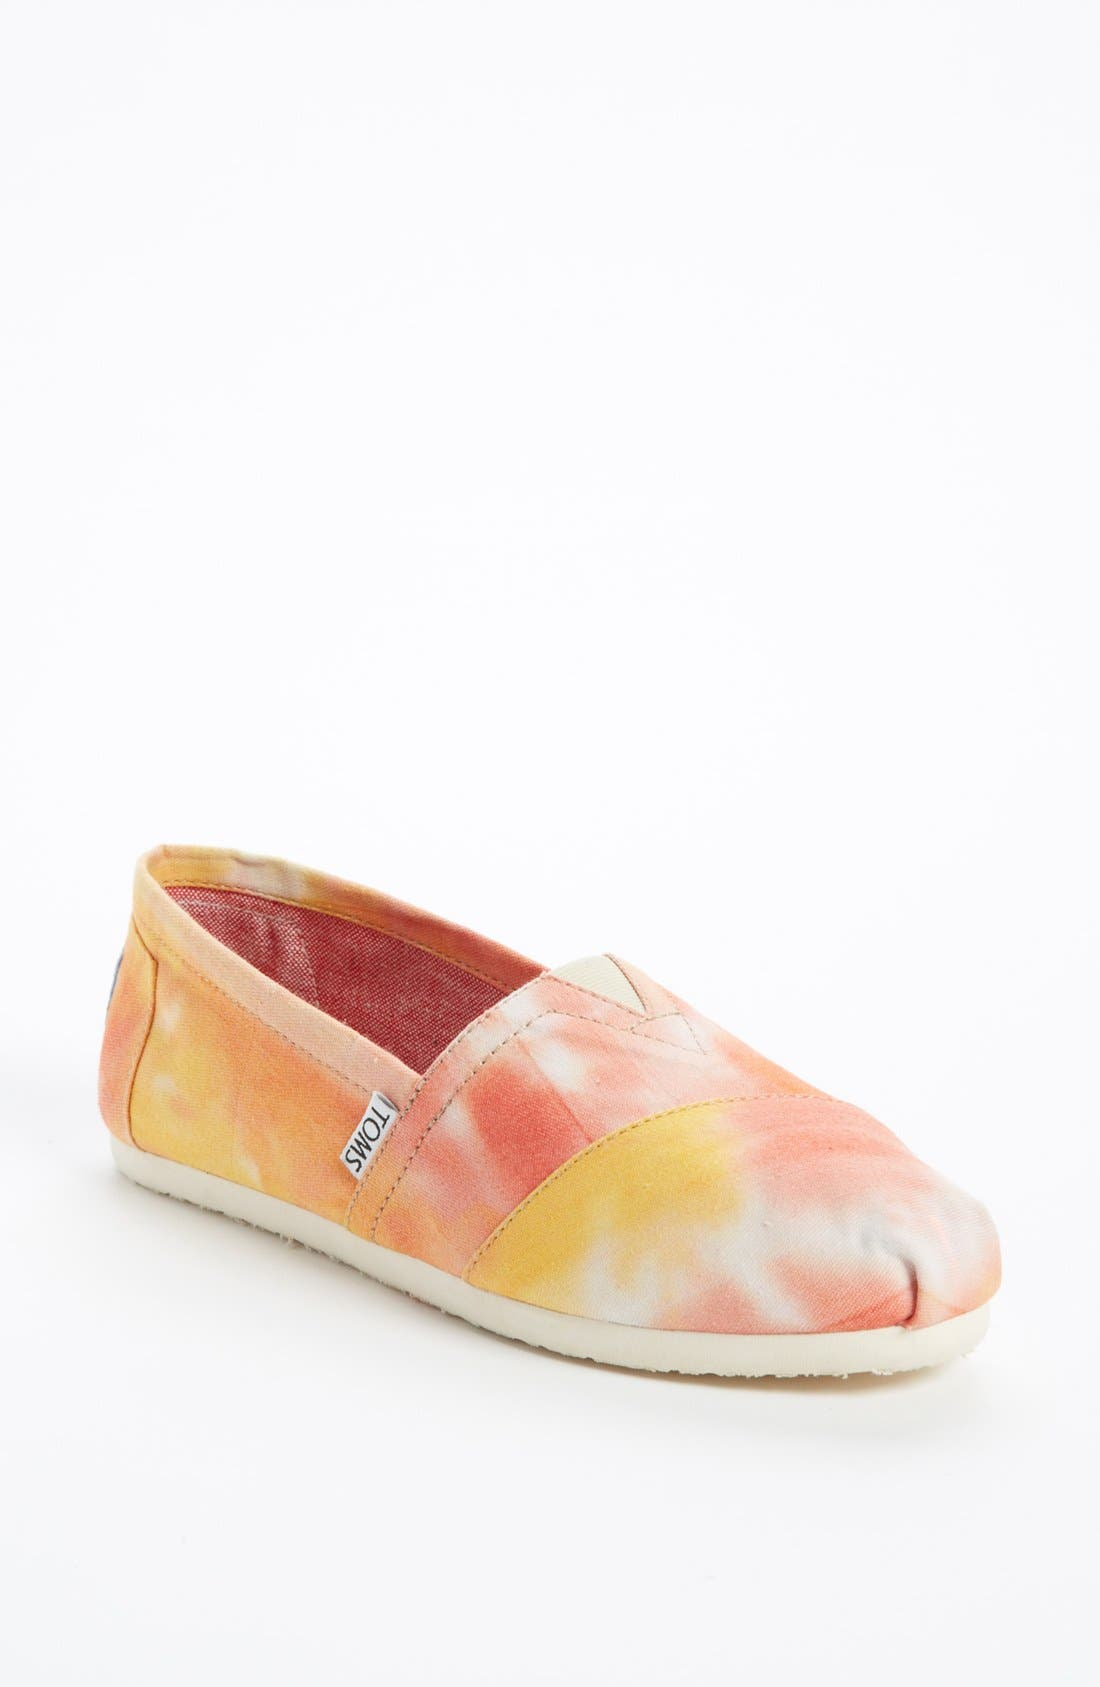 Alternate Image 1 Selected - TOMS 'Classic - Tie Dye' Slip-On (Women)